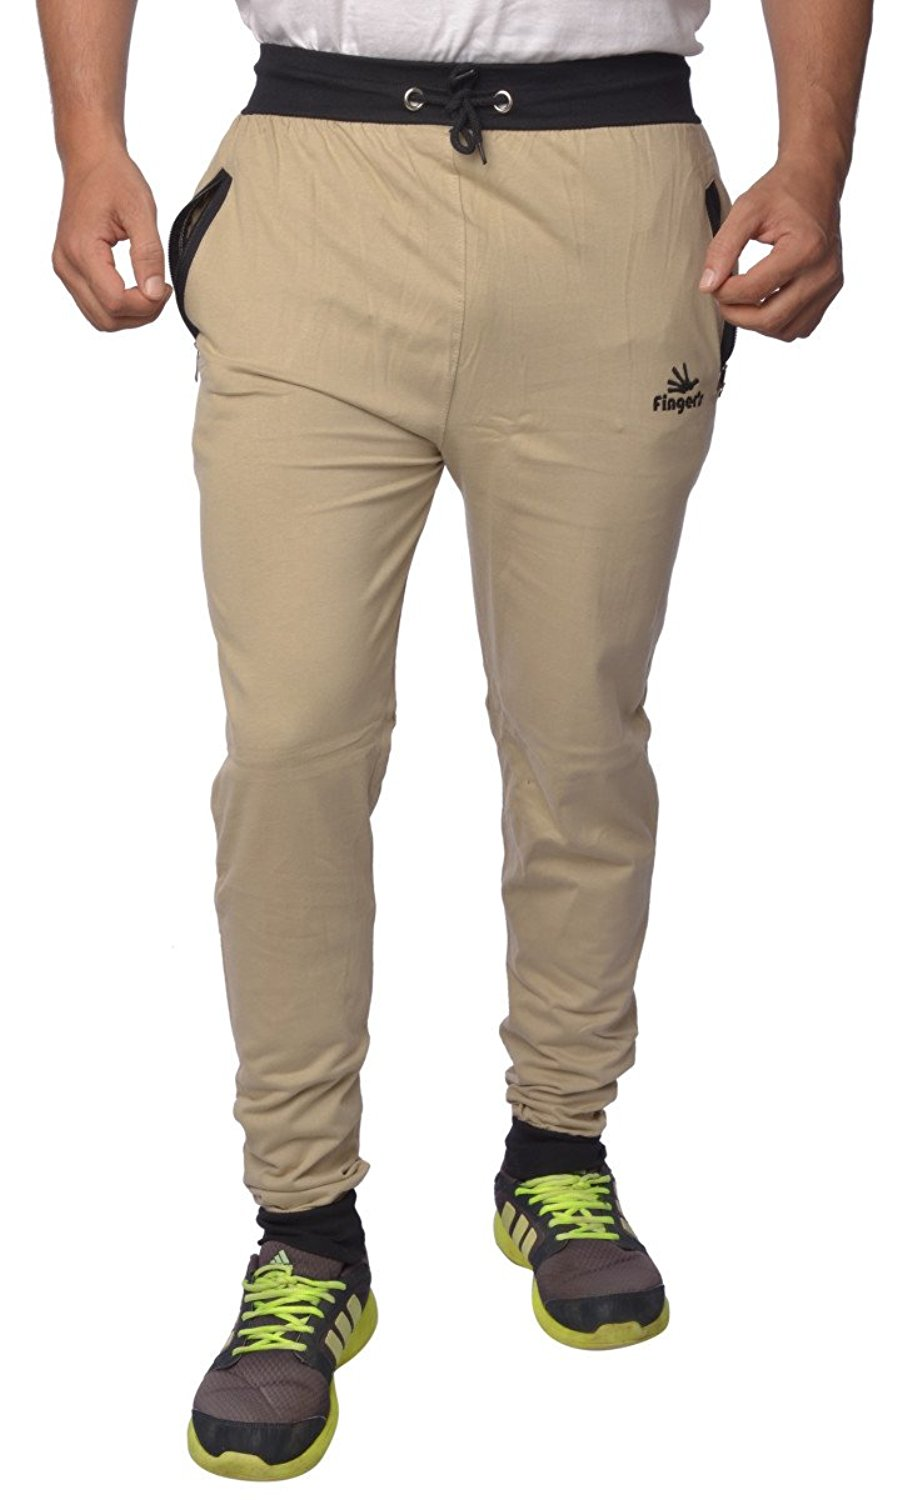 d779ef6bf70 Men s Cotton Track Pants with Zipper Pockets - Hello Dhani